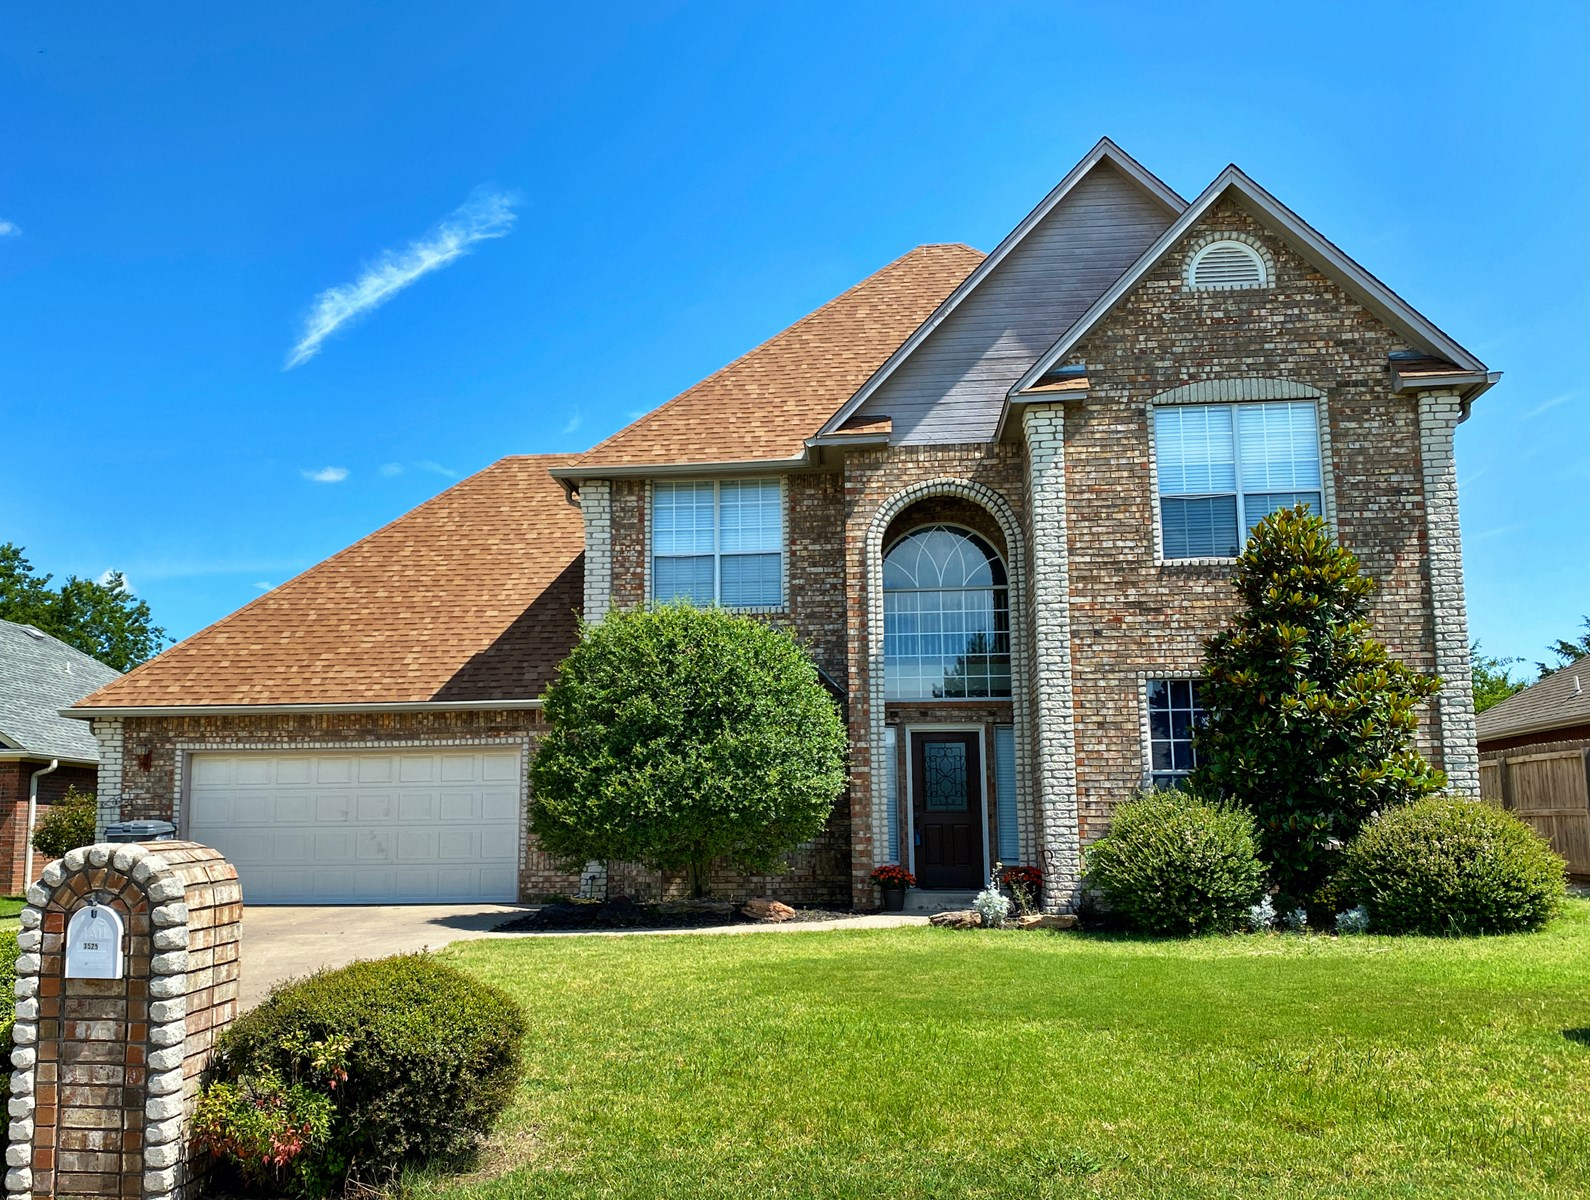 5 Bedroom Home in Plainview School District